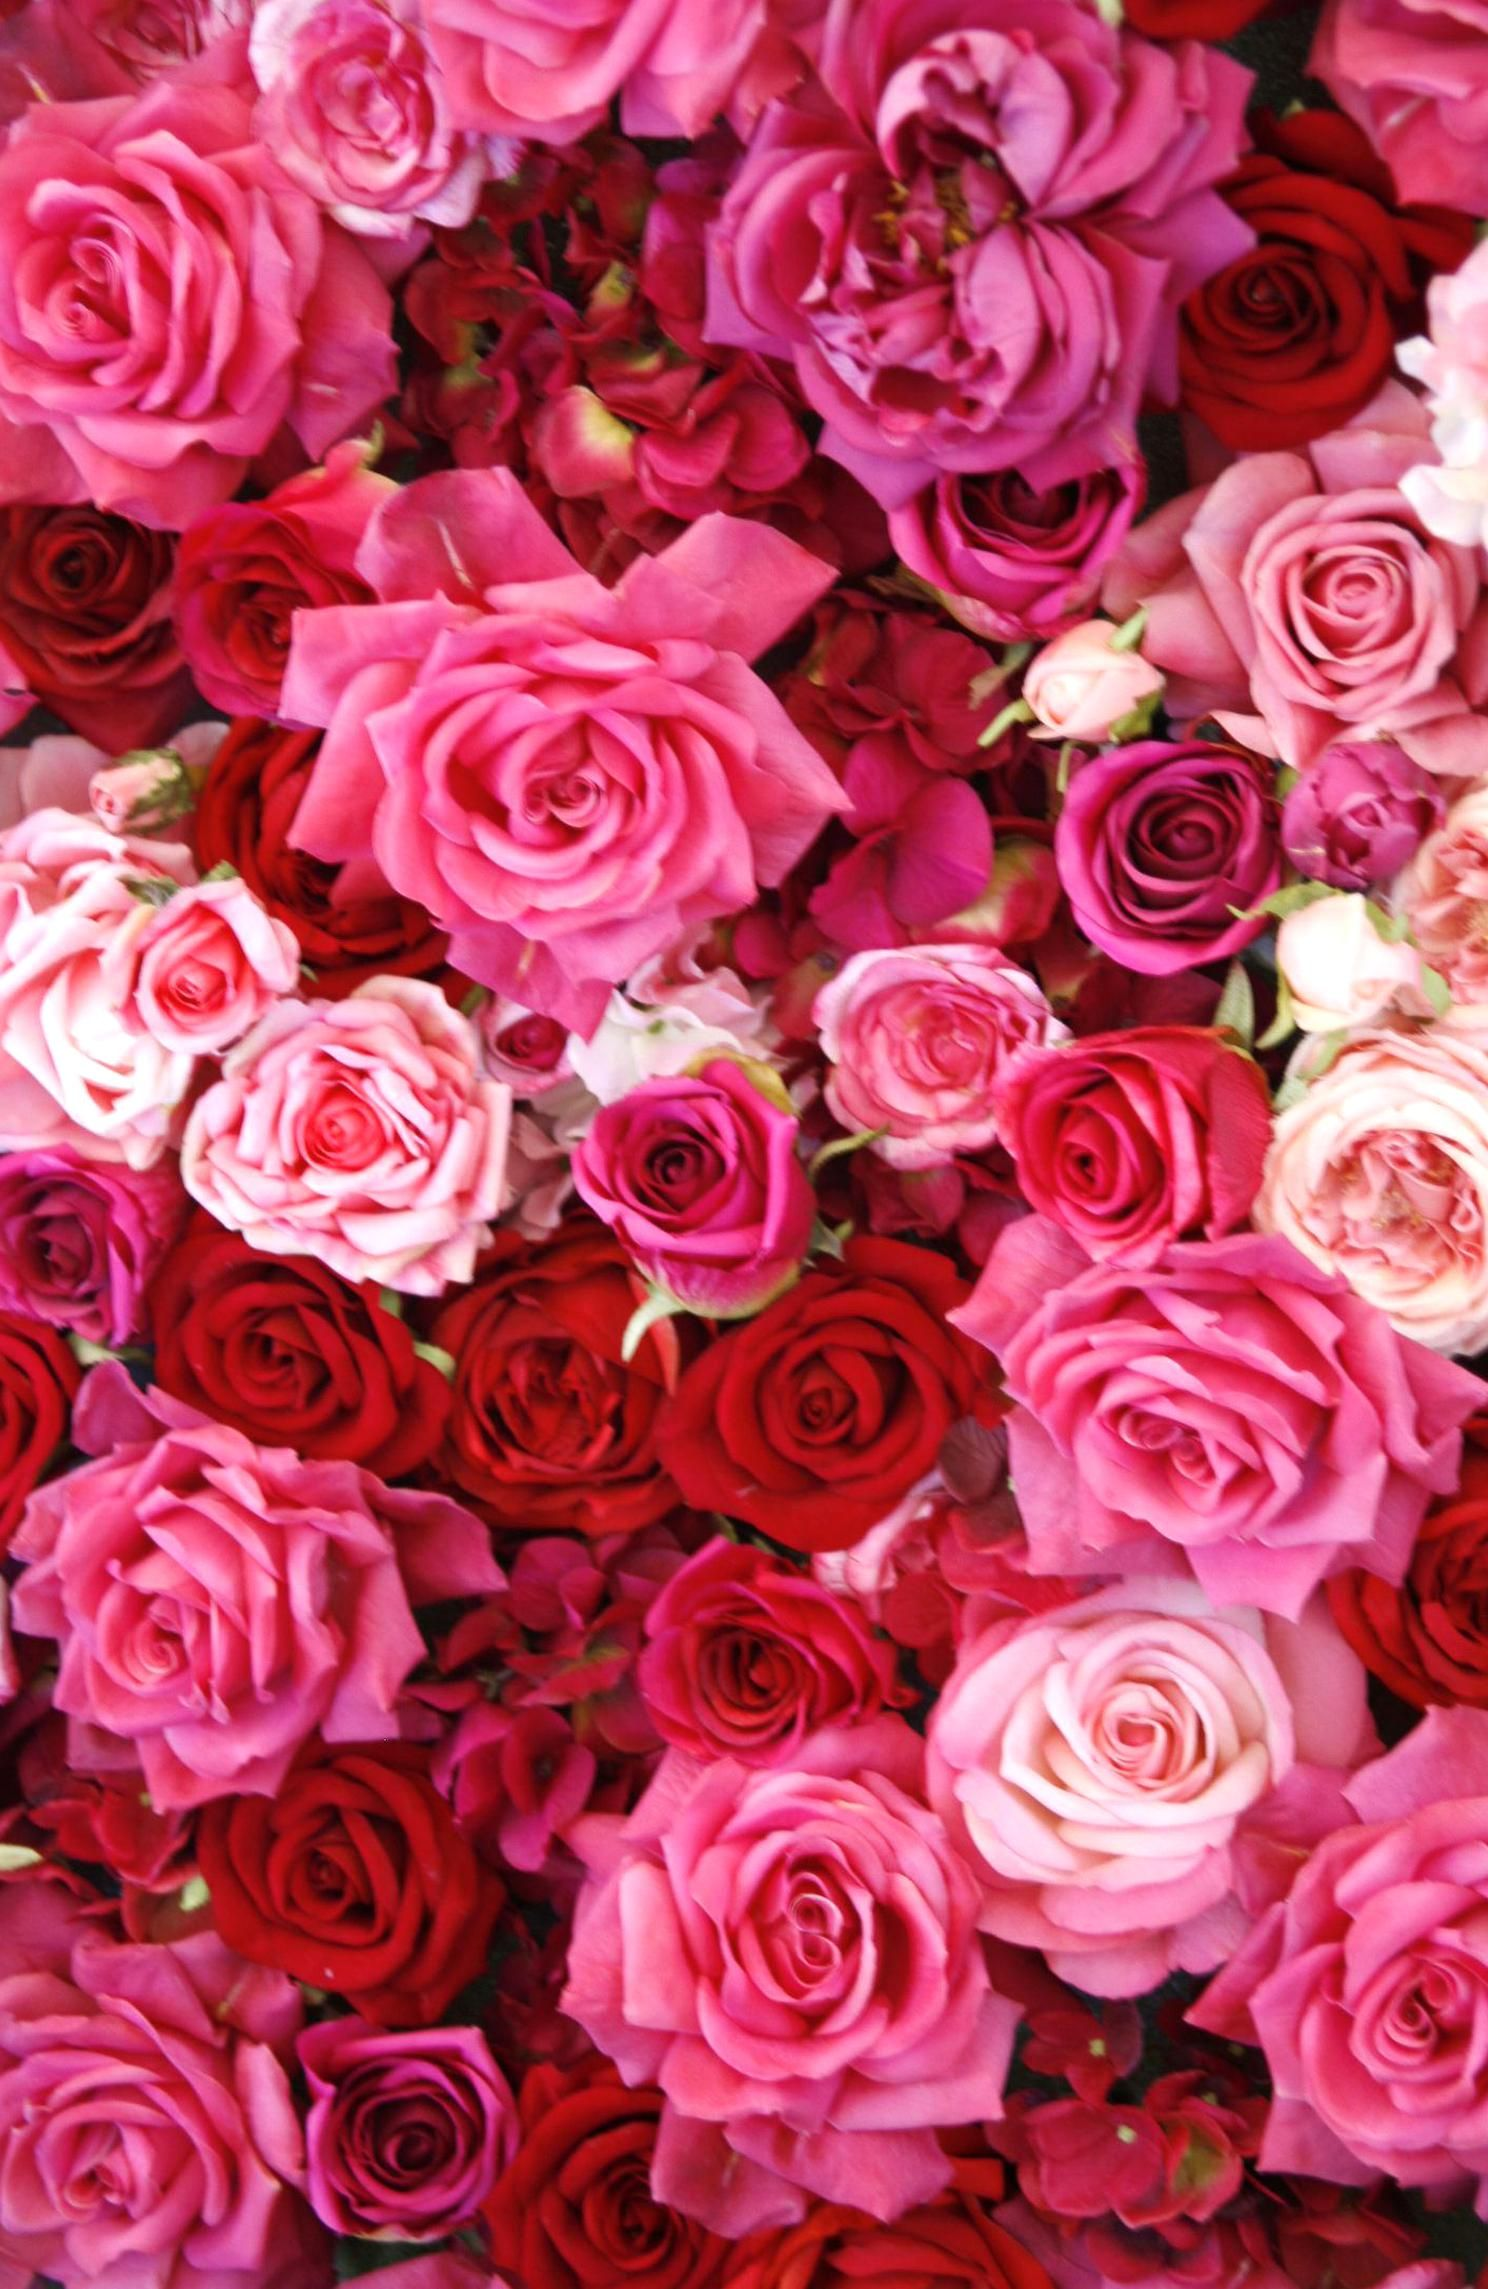 The Language Of Flowers Goodhousemag In 2020 Red Roses Wallpaper Rose Color Meanings Red And Pink Roses